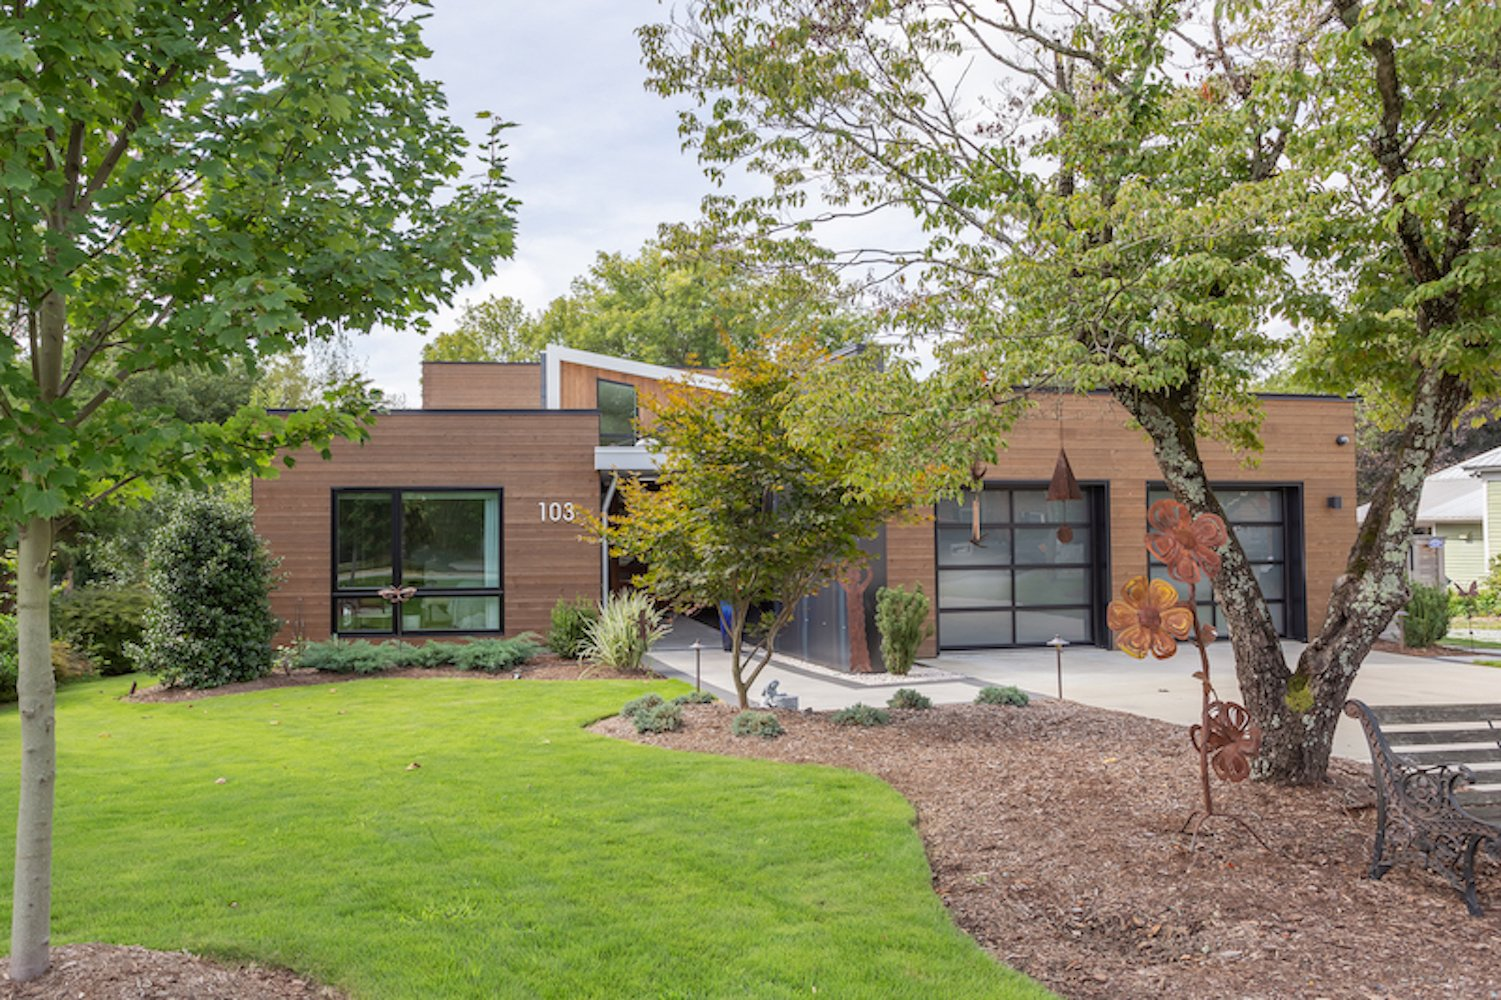 Exterior, House Building Type, Metal Siding Material, Metal Roof Material, Flat RoofLine, and Wood Siding Material A one-story form faces the public street.  The Thomas Residence